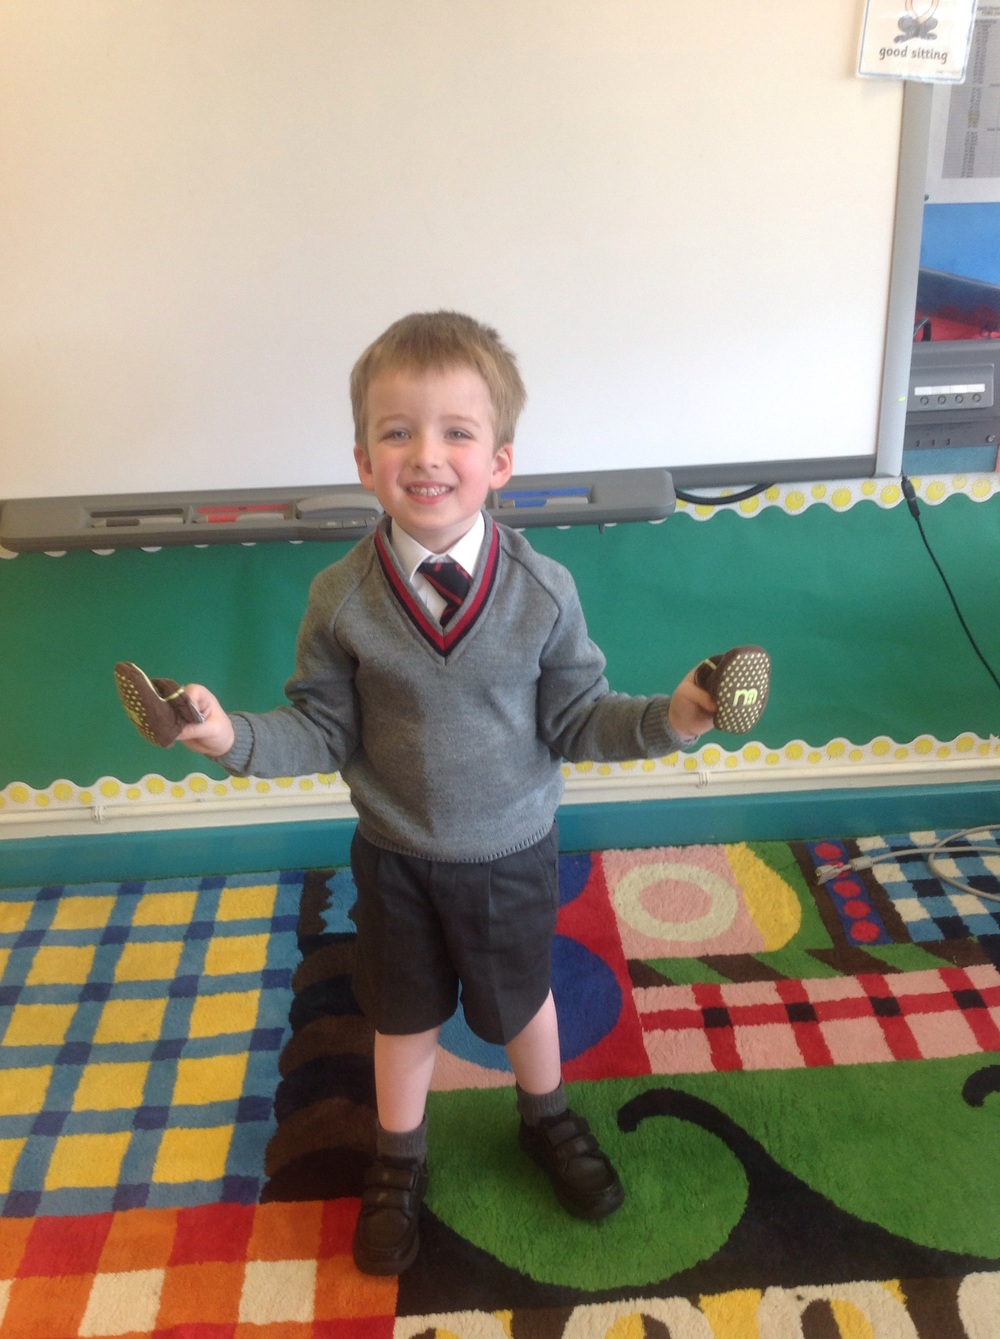 Ethan was so excited to tell us all about his first ever pair of slippers!